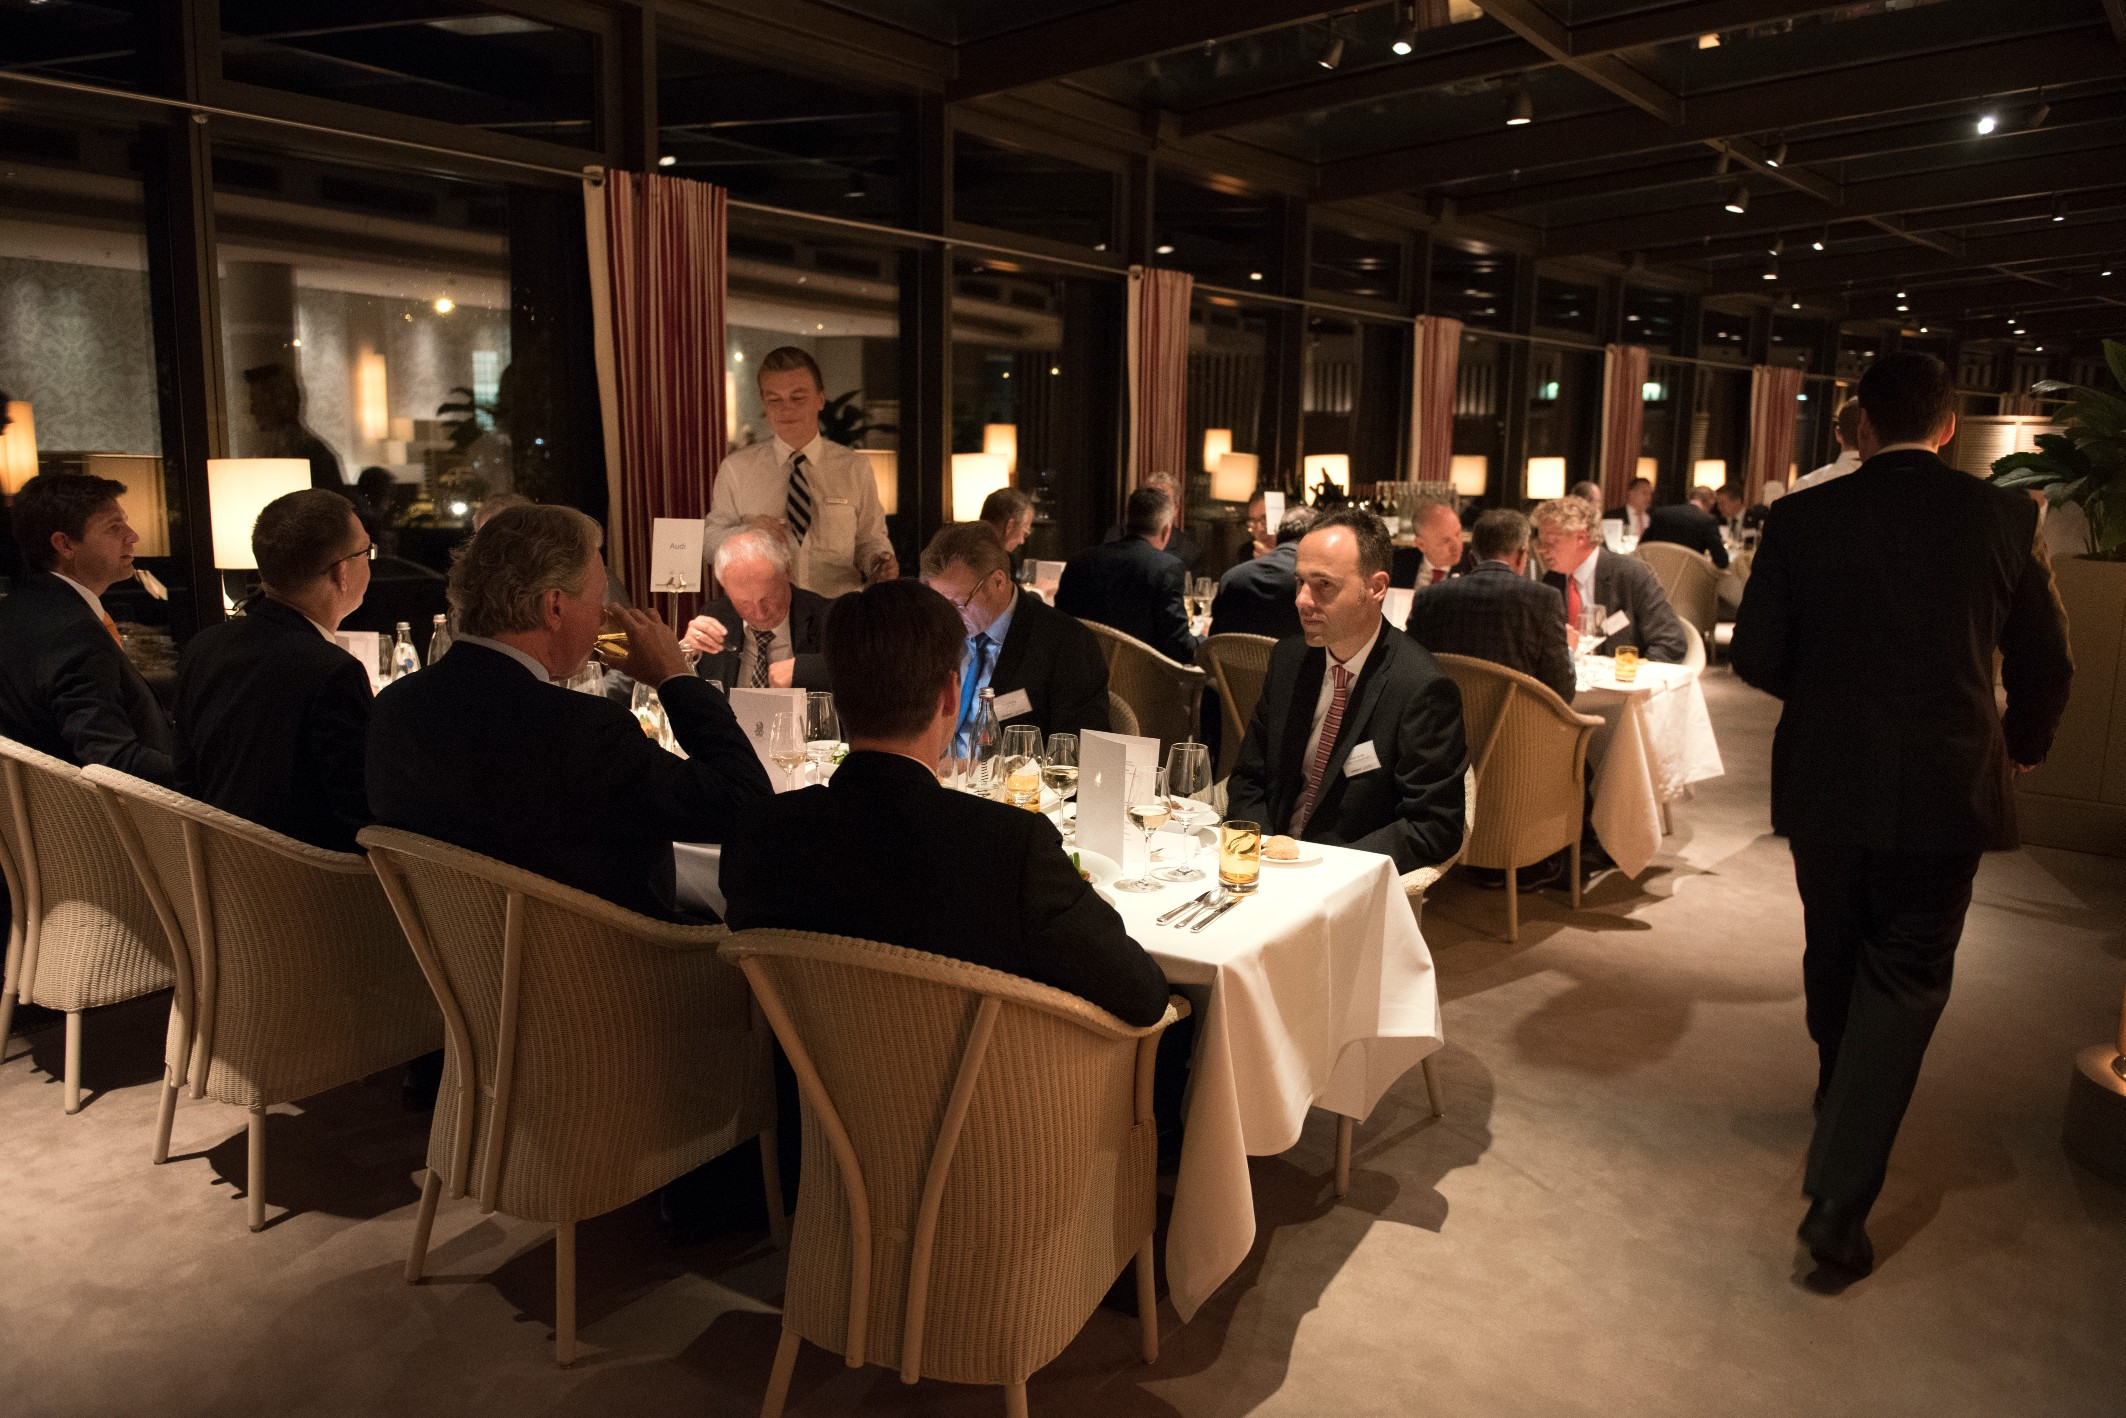 The dinner gathered more than 50 global automotive executives to talk abour future trends and opportunities in the industry.